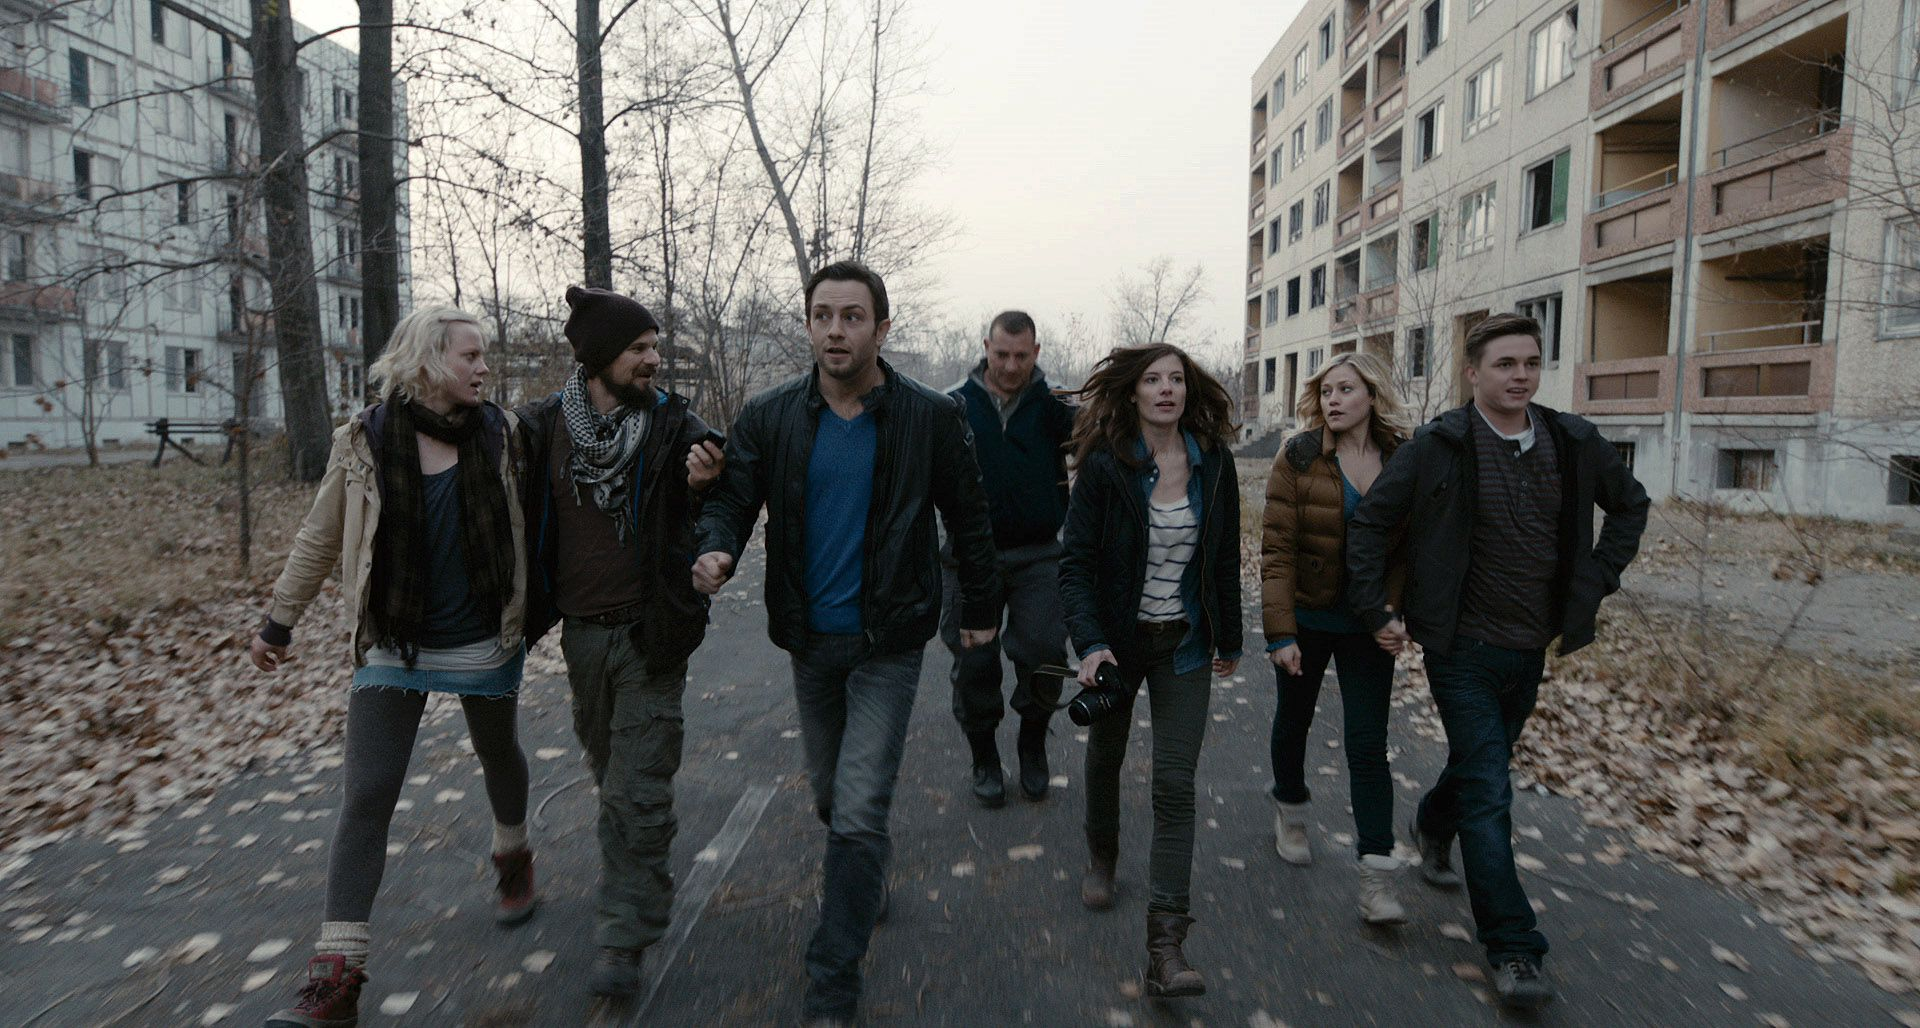 An image from Chernobyl Diaries